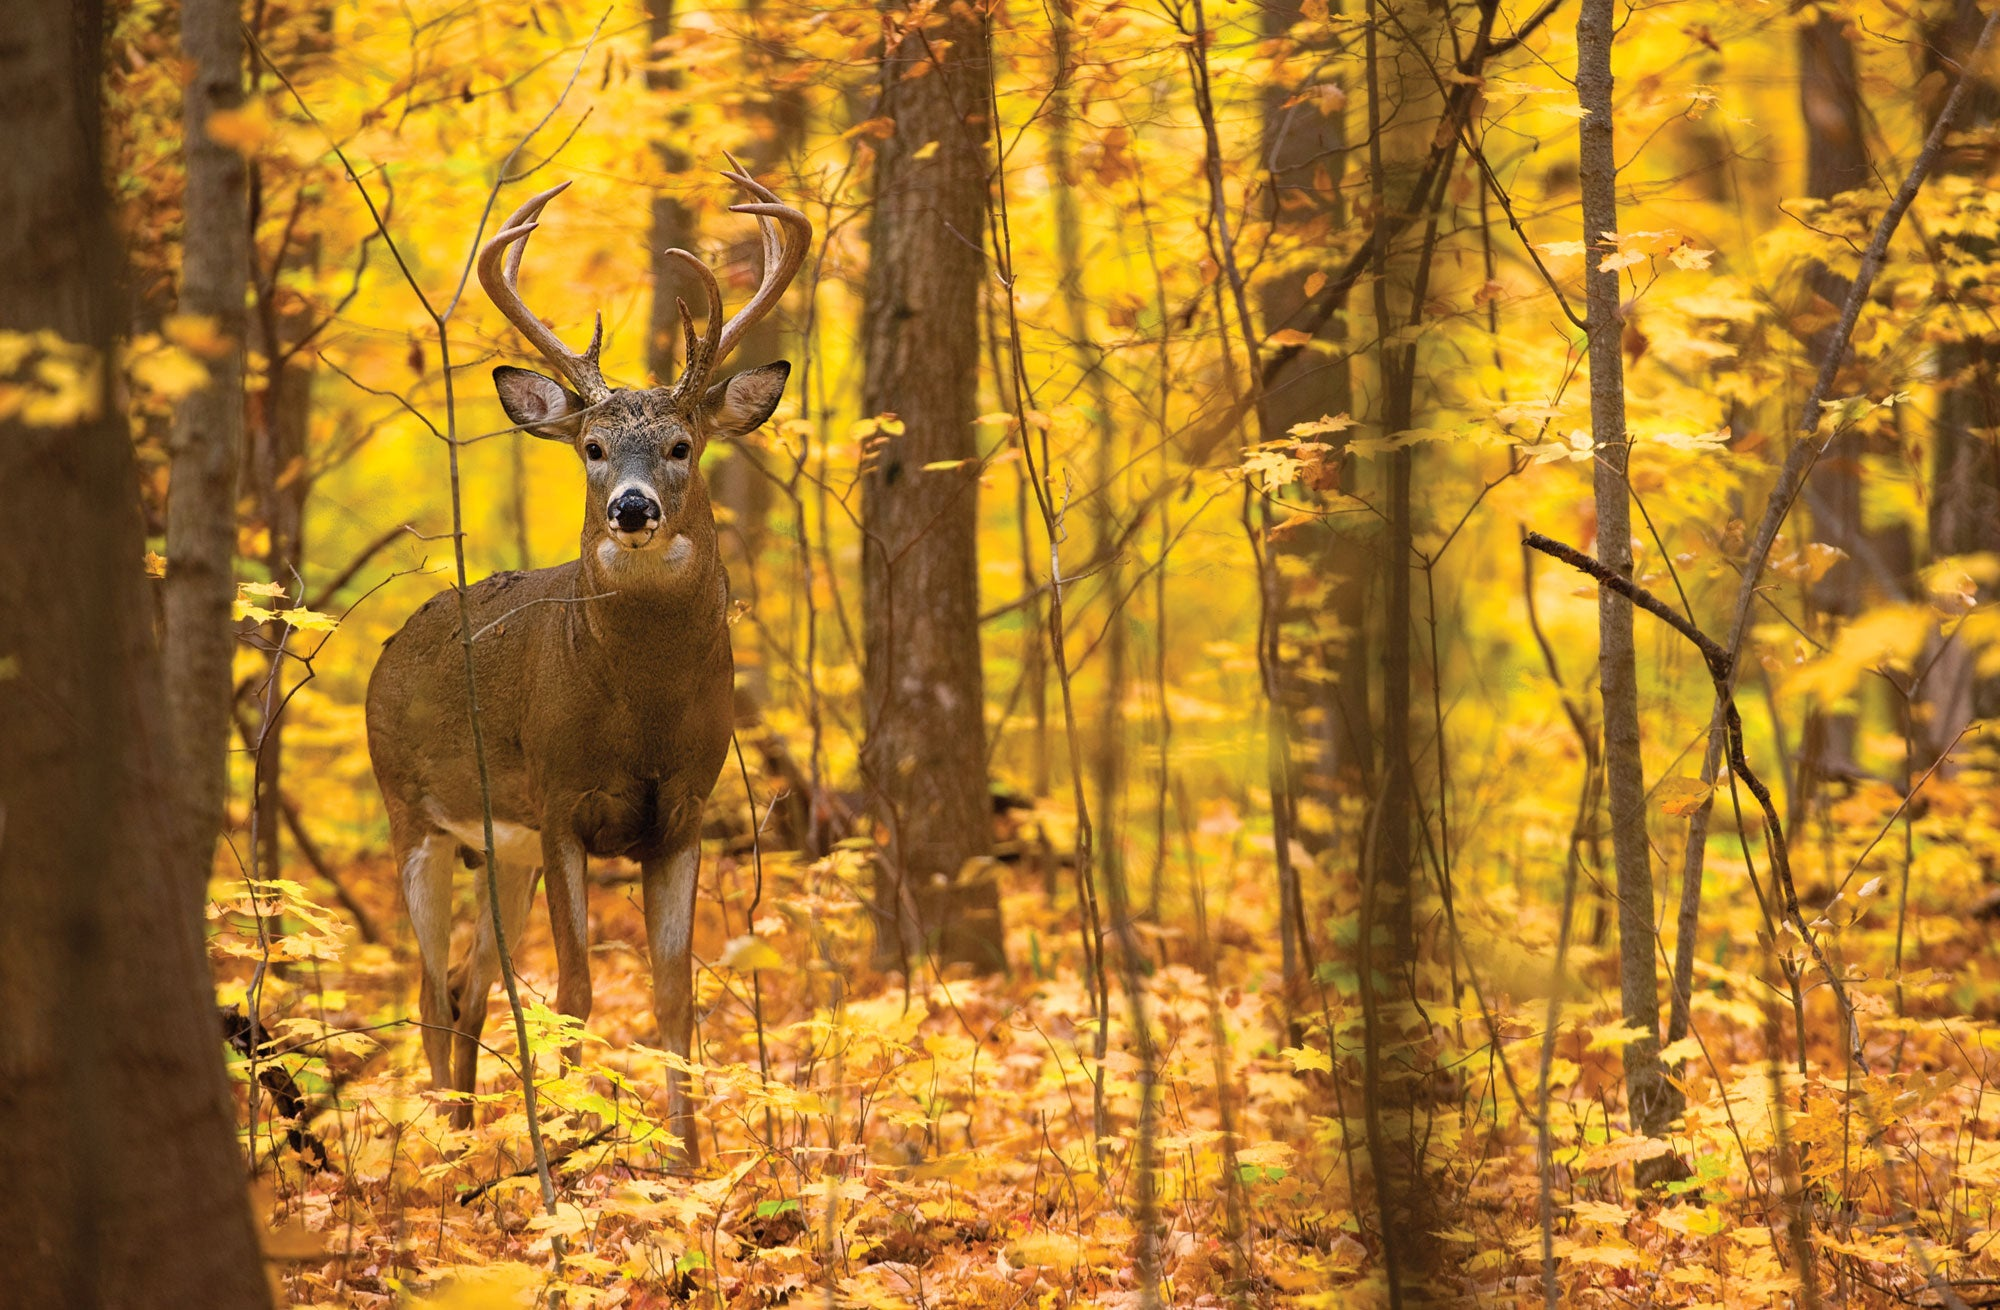 Whitetails: How to Find Rut Action Right Now